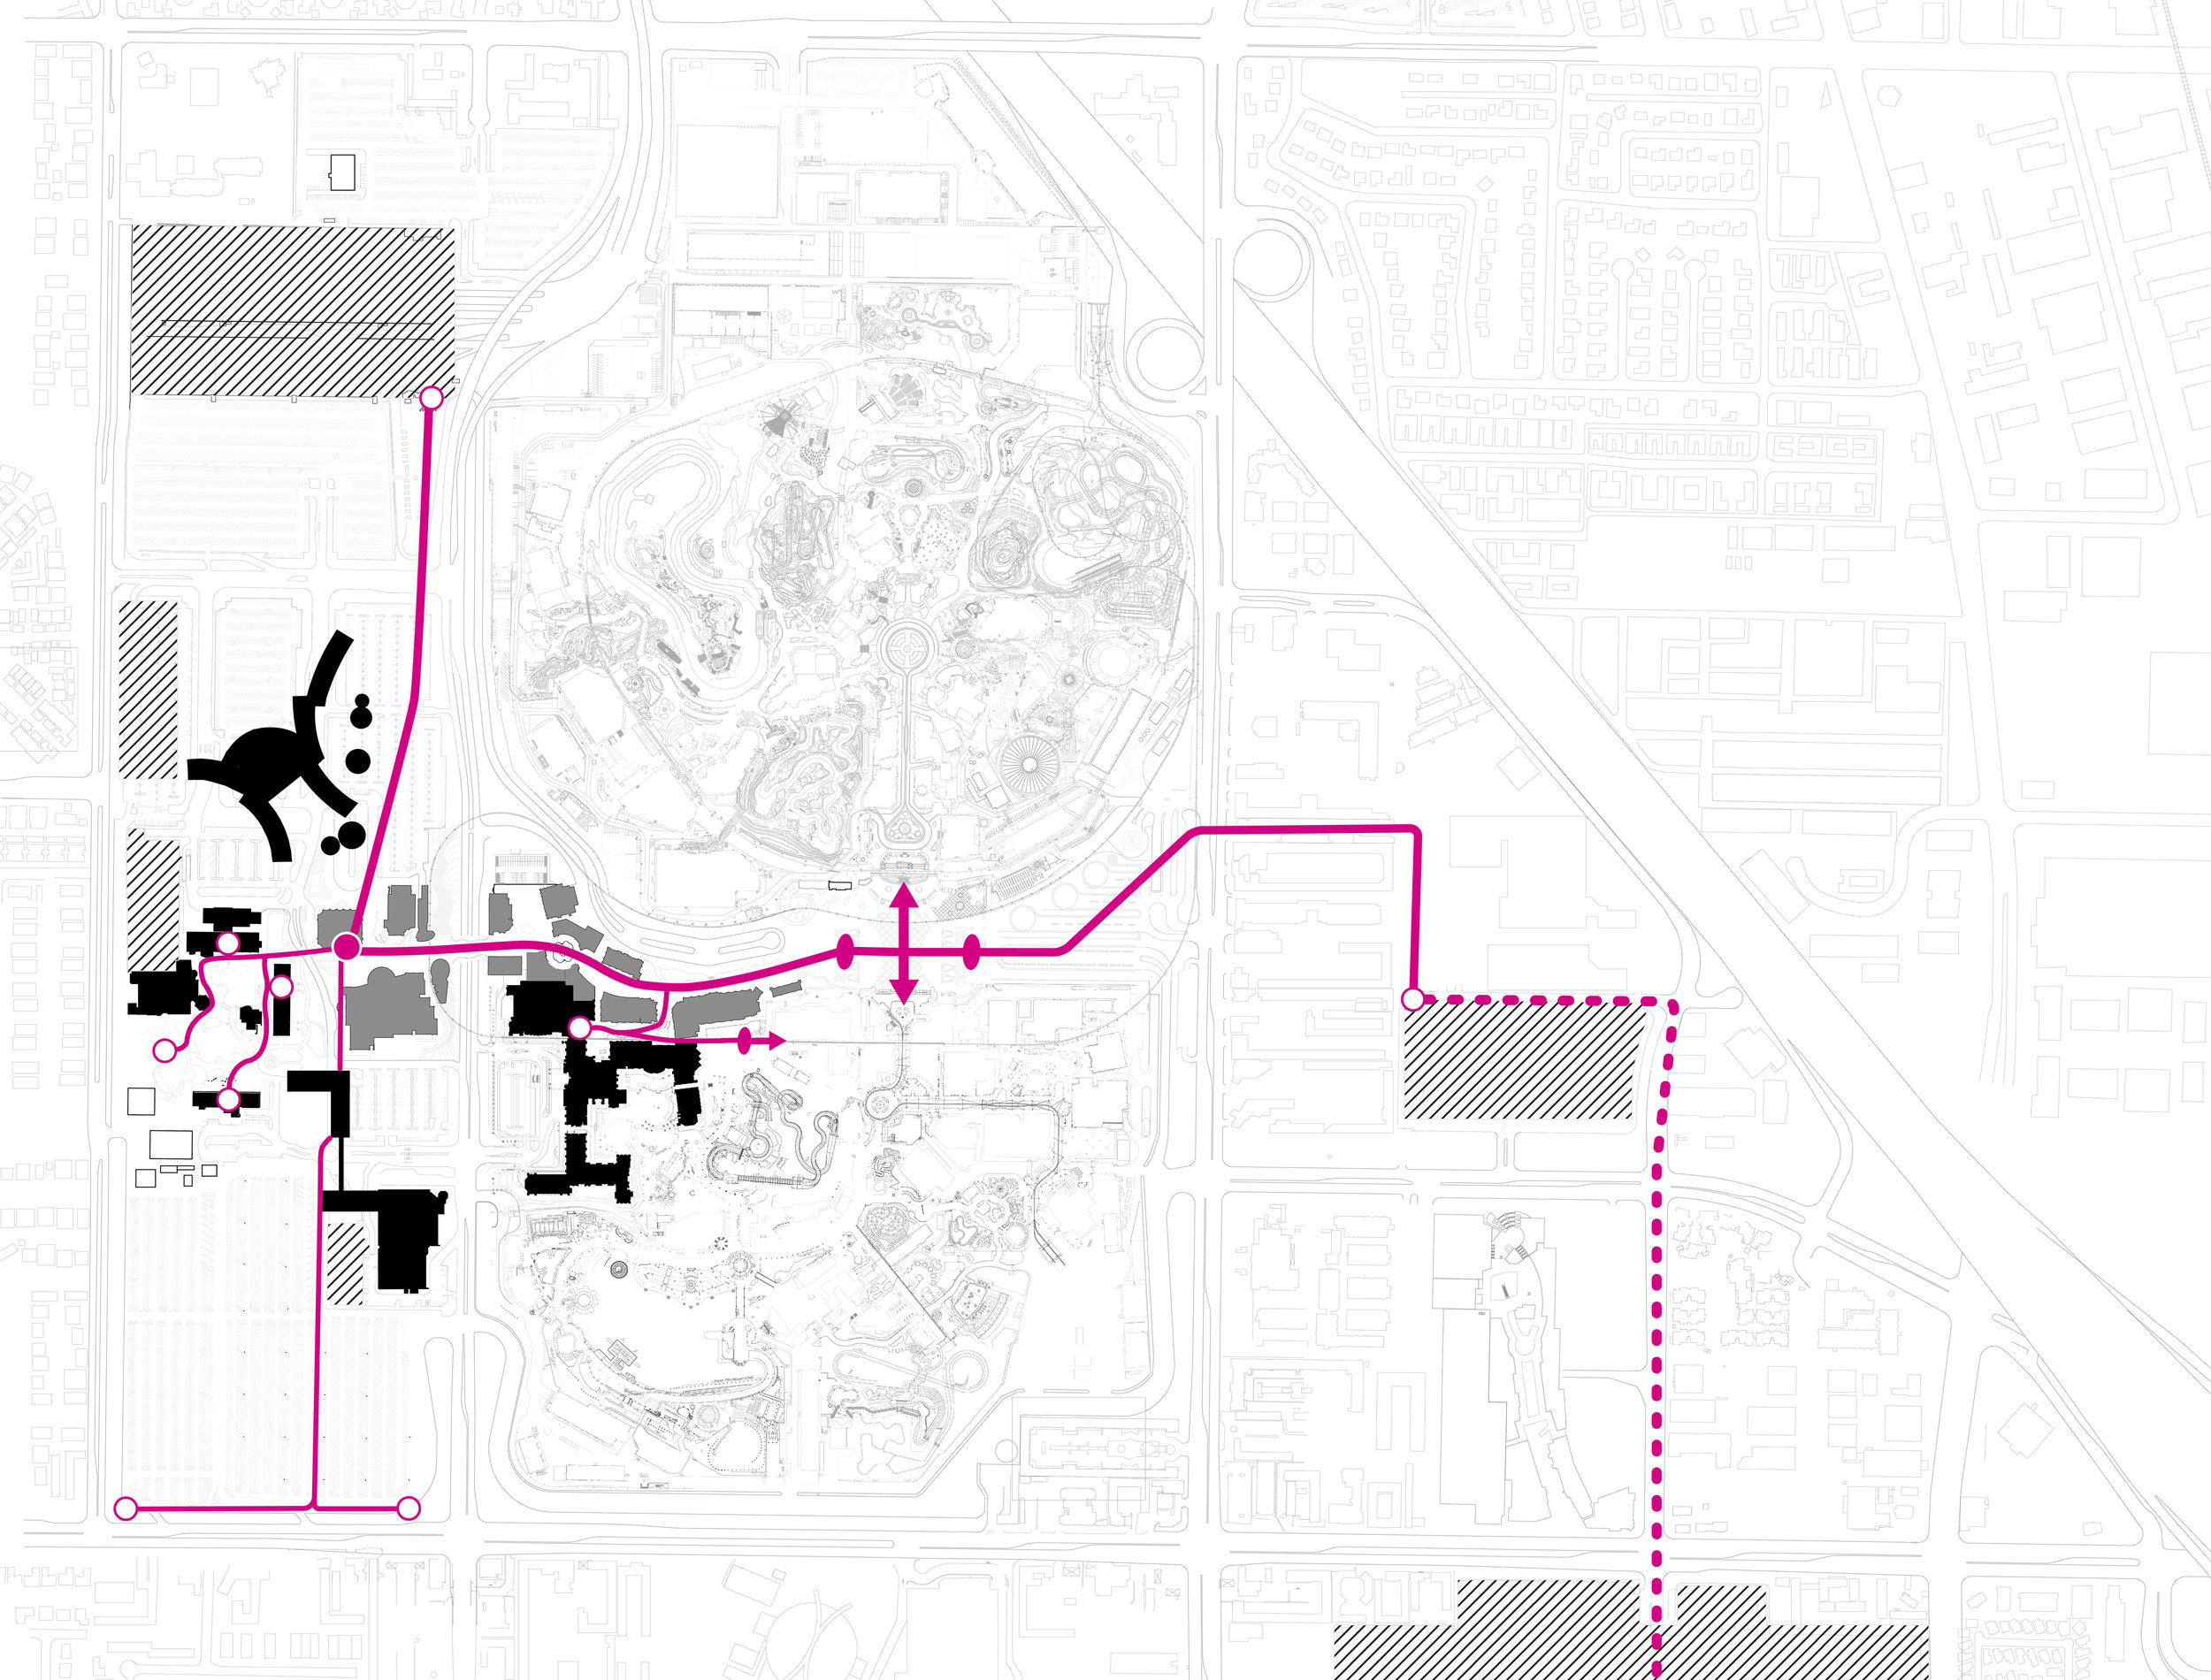 Reorganized pedestrian flows to focus on experiential procession